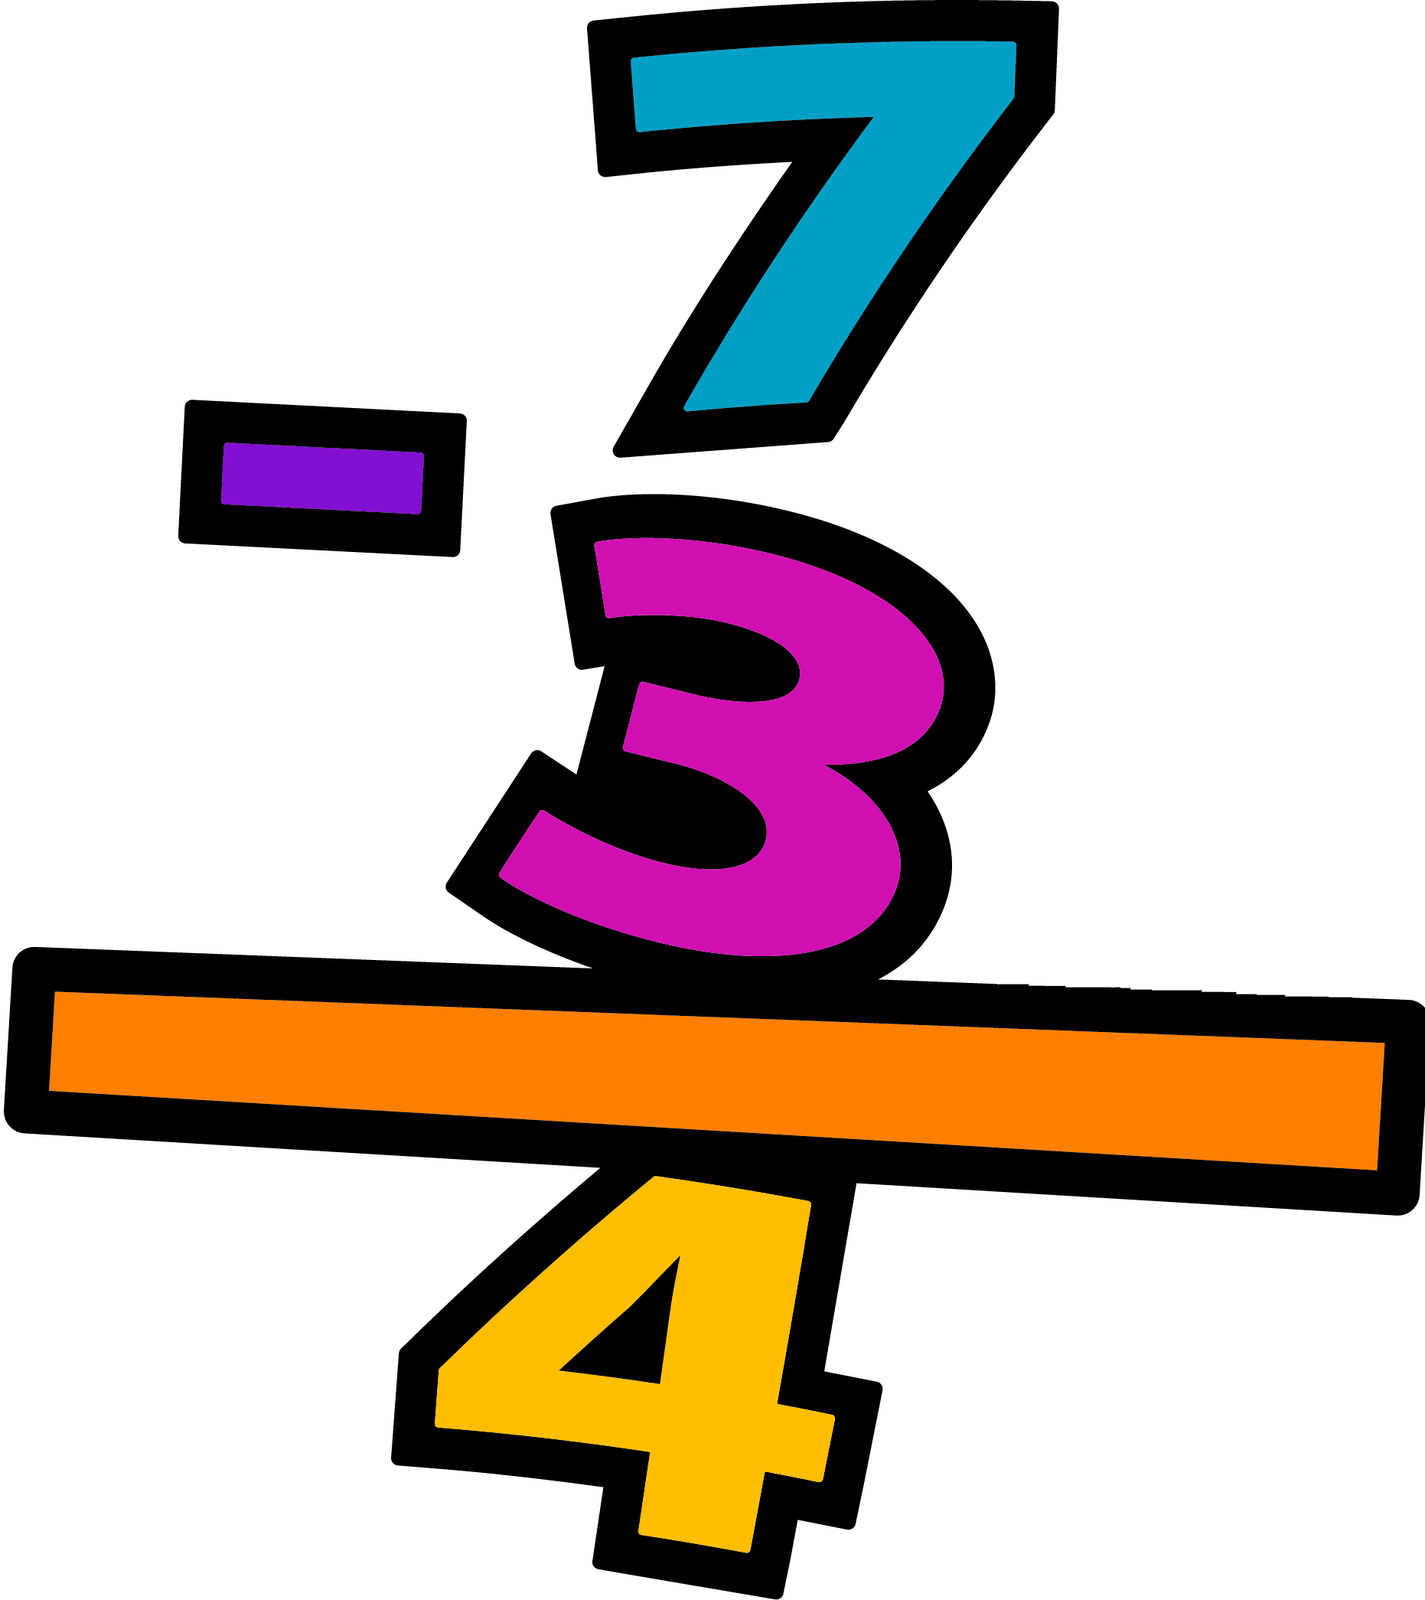 Math Problems Clipart